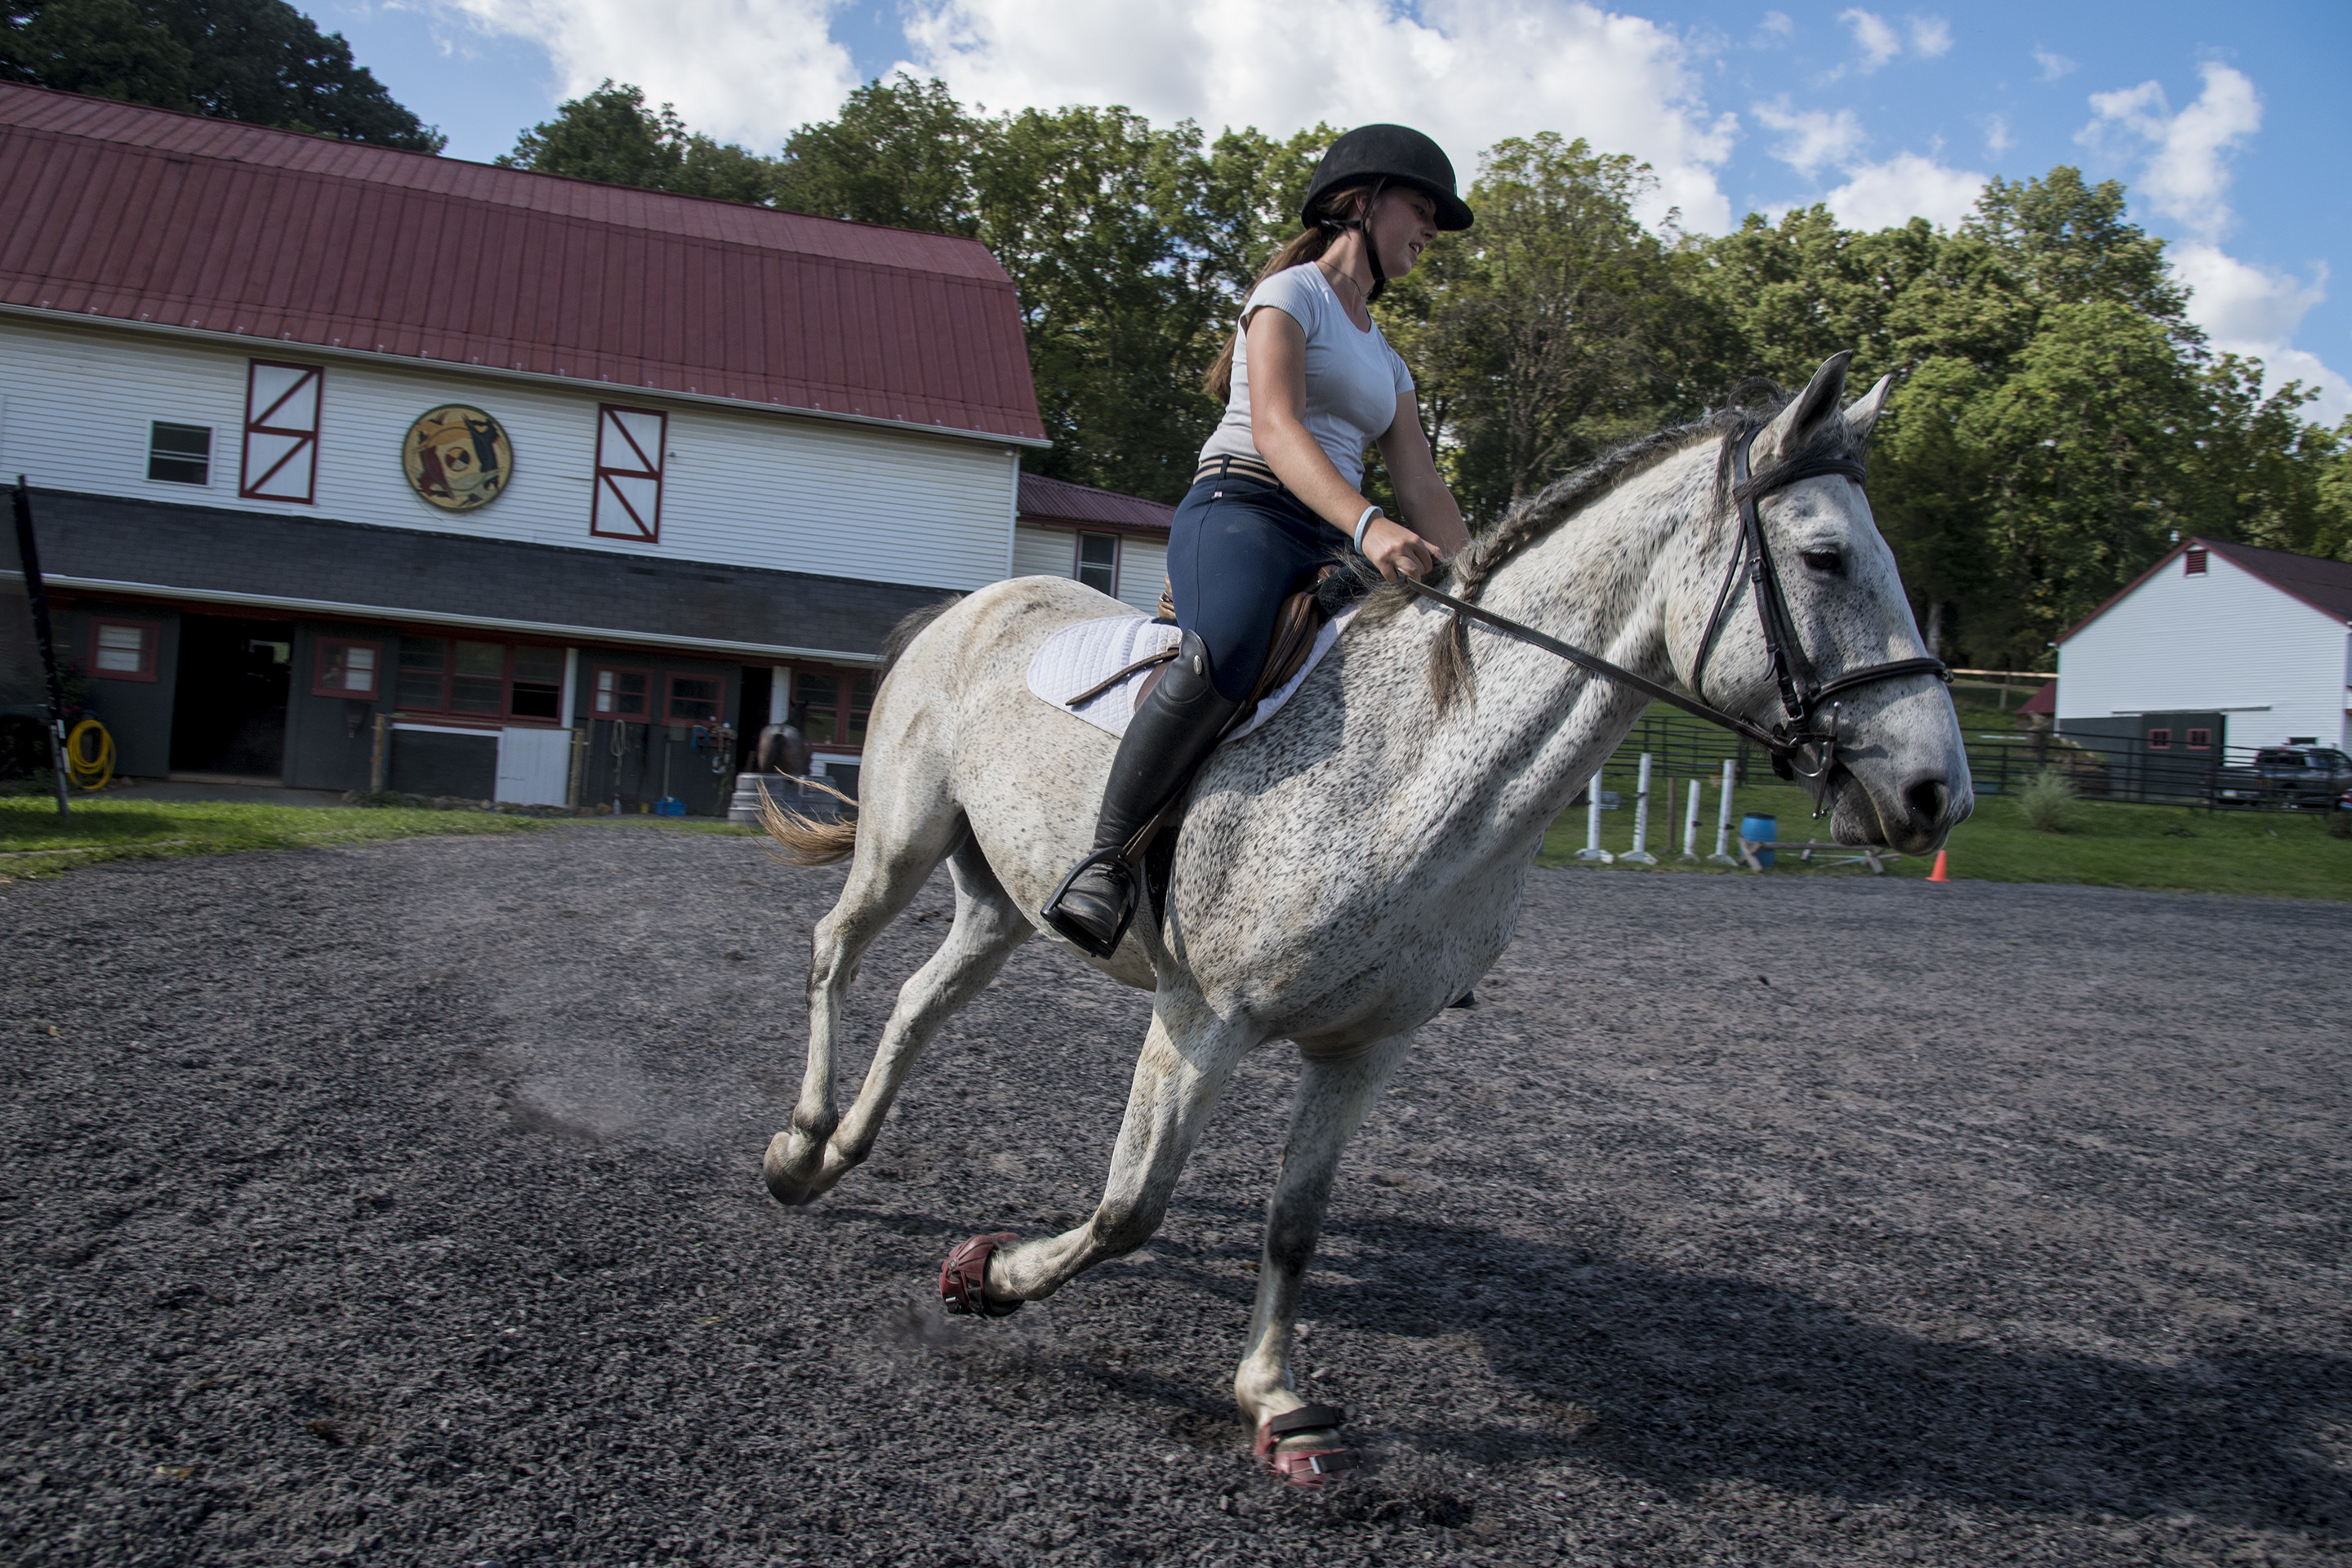 Neva McGowan, 17, rides Moon, 8, a formerly-wild, endangered Nokota horse, around the ring of her parents 13-acre Nokota Horse Preserve in Birchrunville, Chester County,, PA, Neva's mom, Christine, is dedicated to saving Nakotas, which trace their ancestry back to Lakota Chief Sitting Bull.